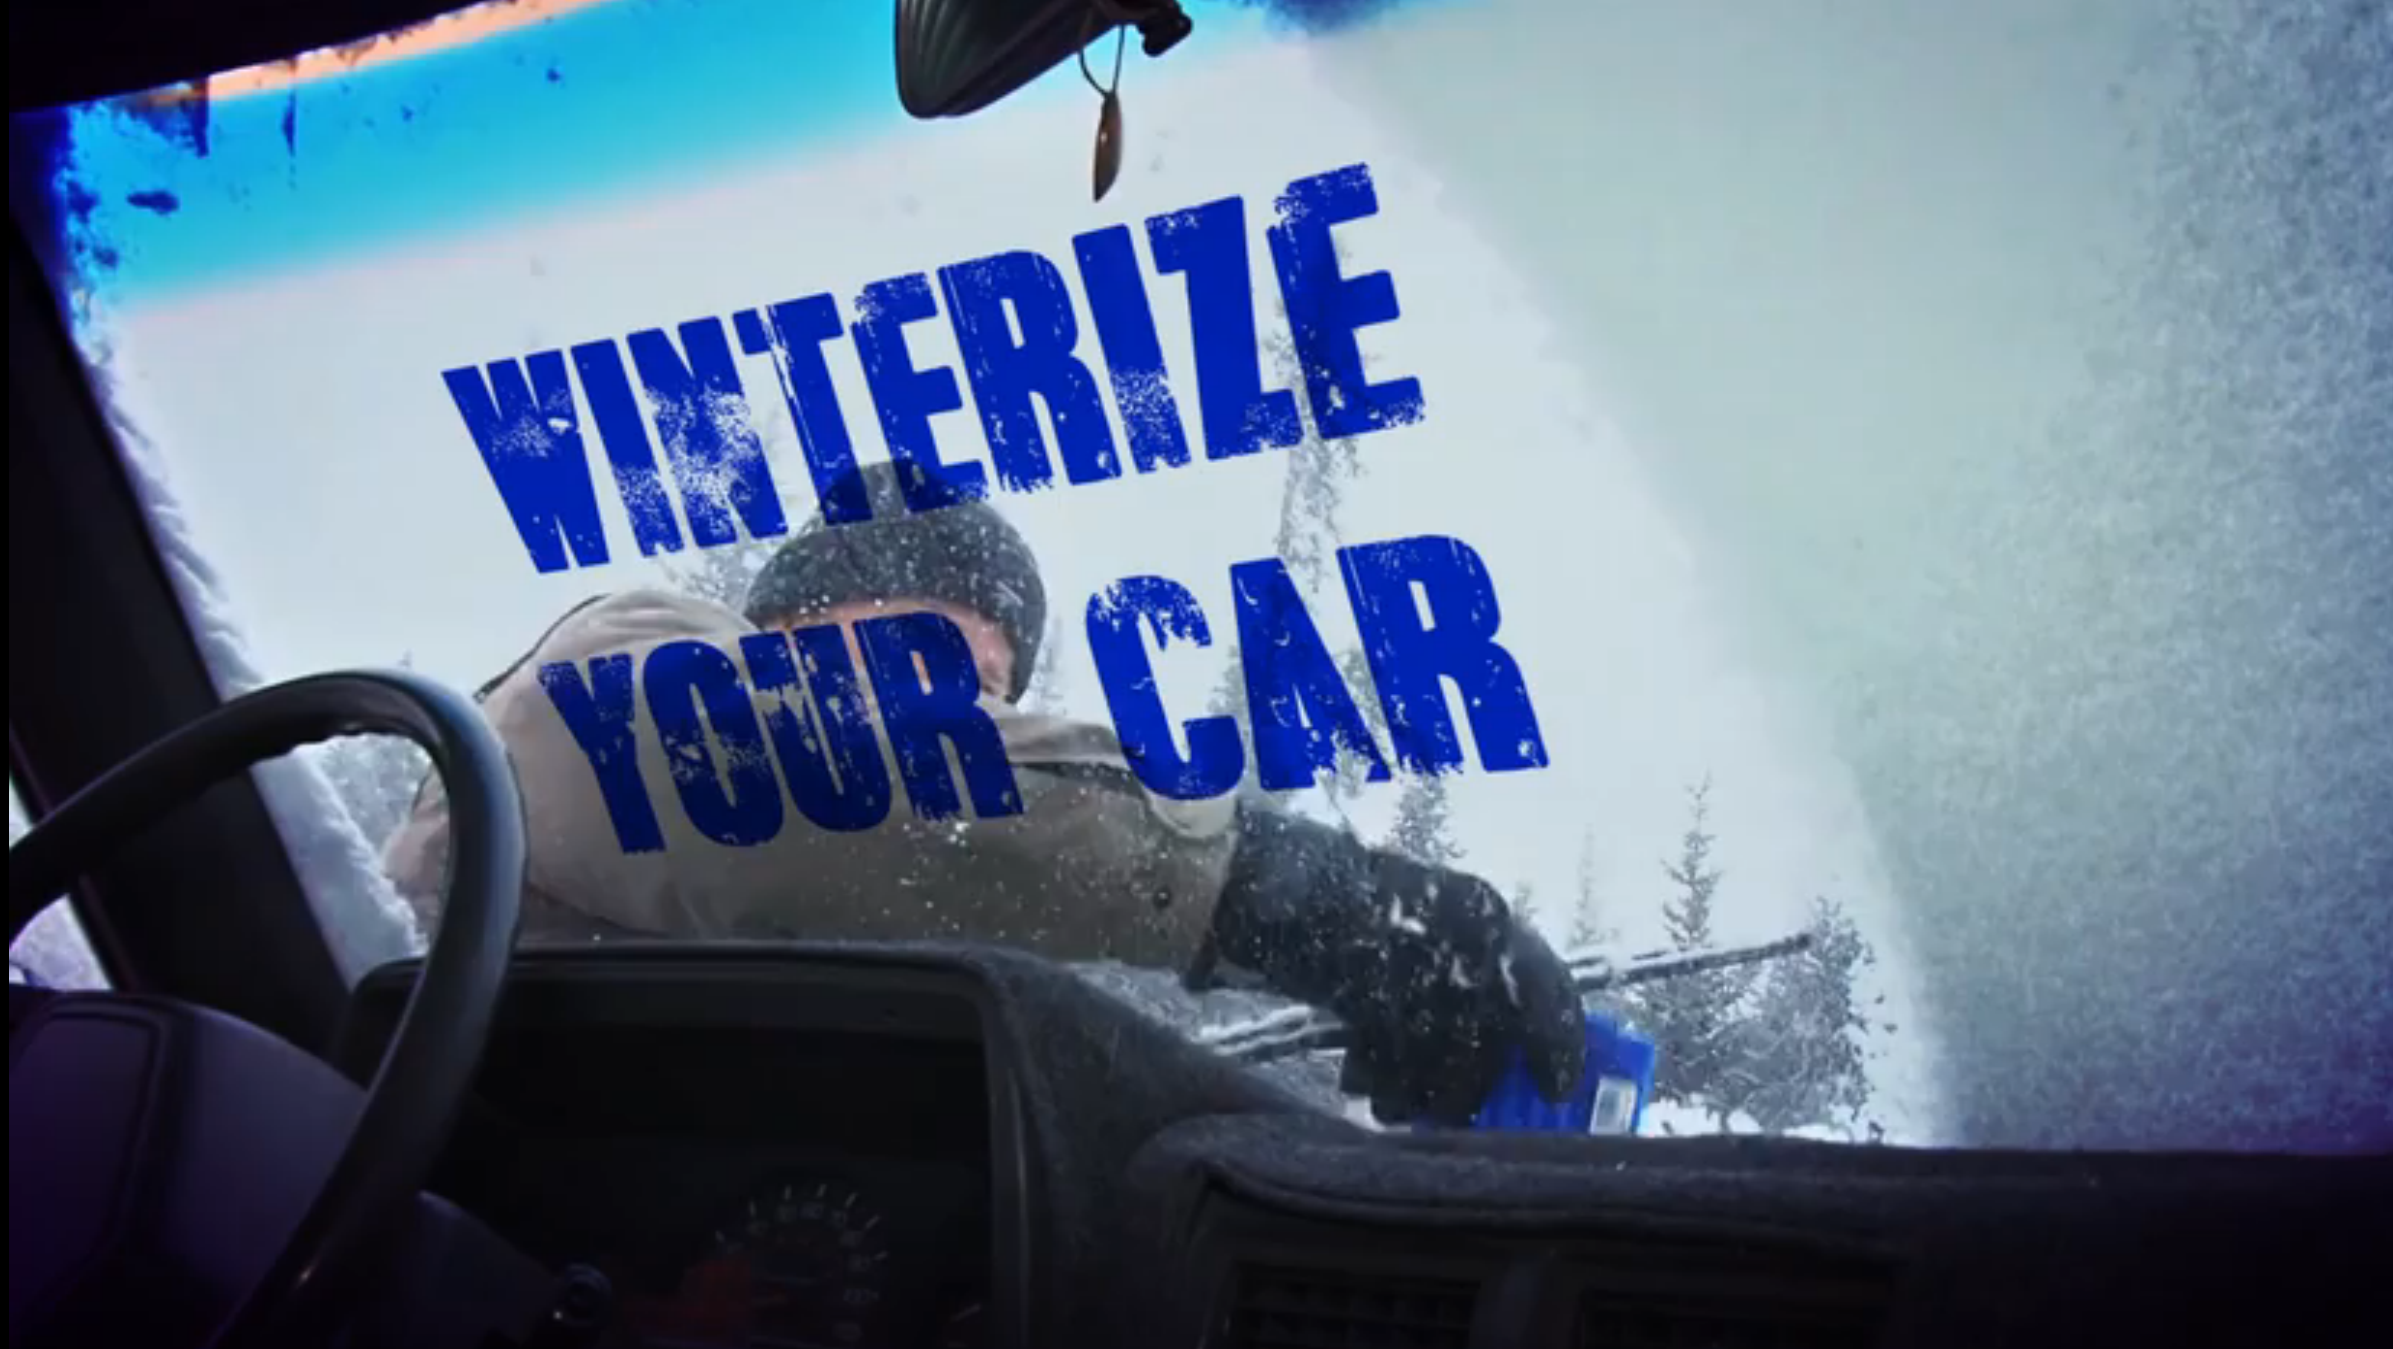 Winterizing Your Car: Top 5 Things To Do To Winterize Your Car